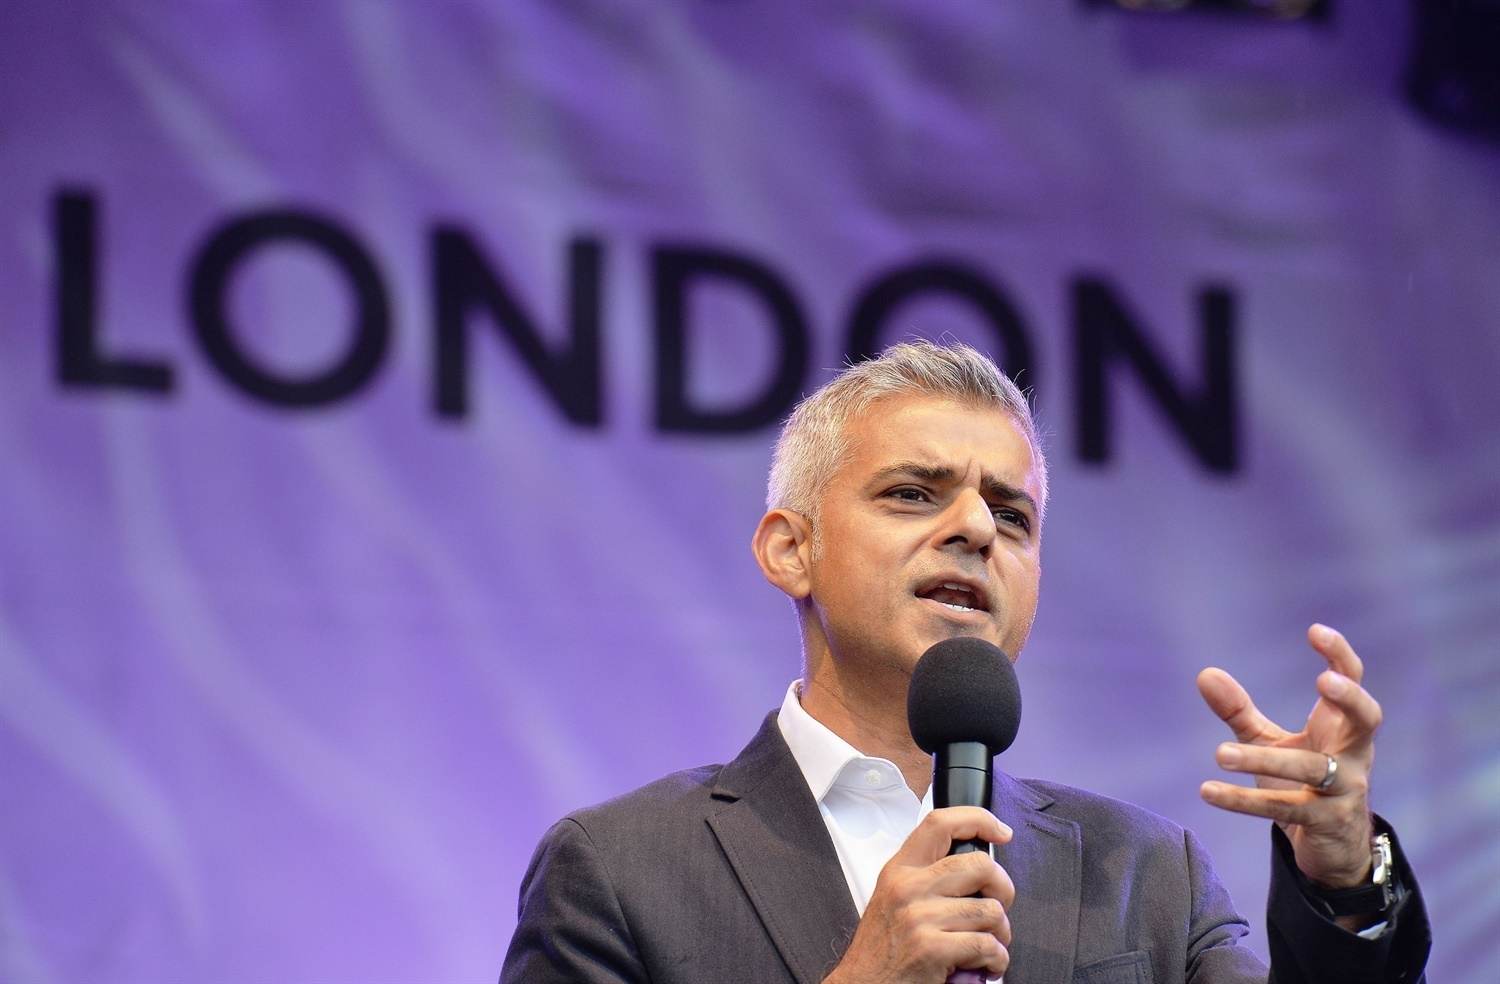 Business leaders urge Khan to appoint 'freight commissioner' for London